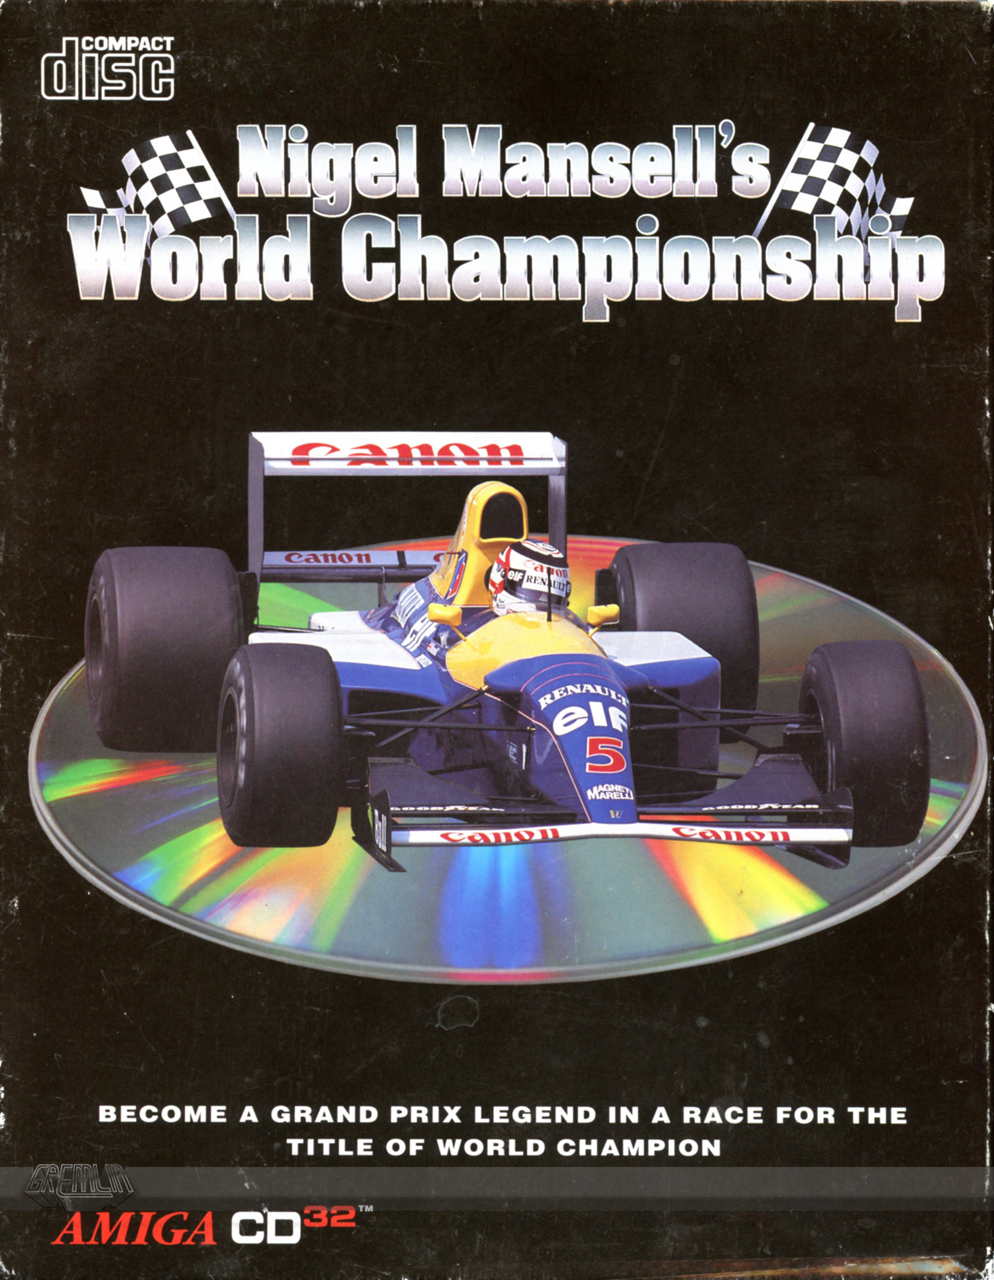 Nigel Mansell's World Championship (Credits, Manual & Media)